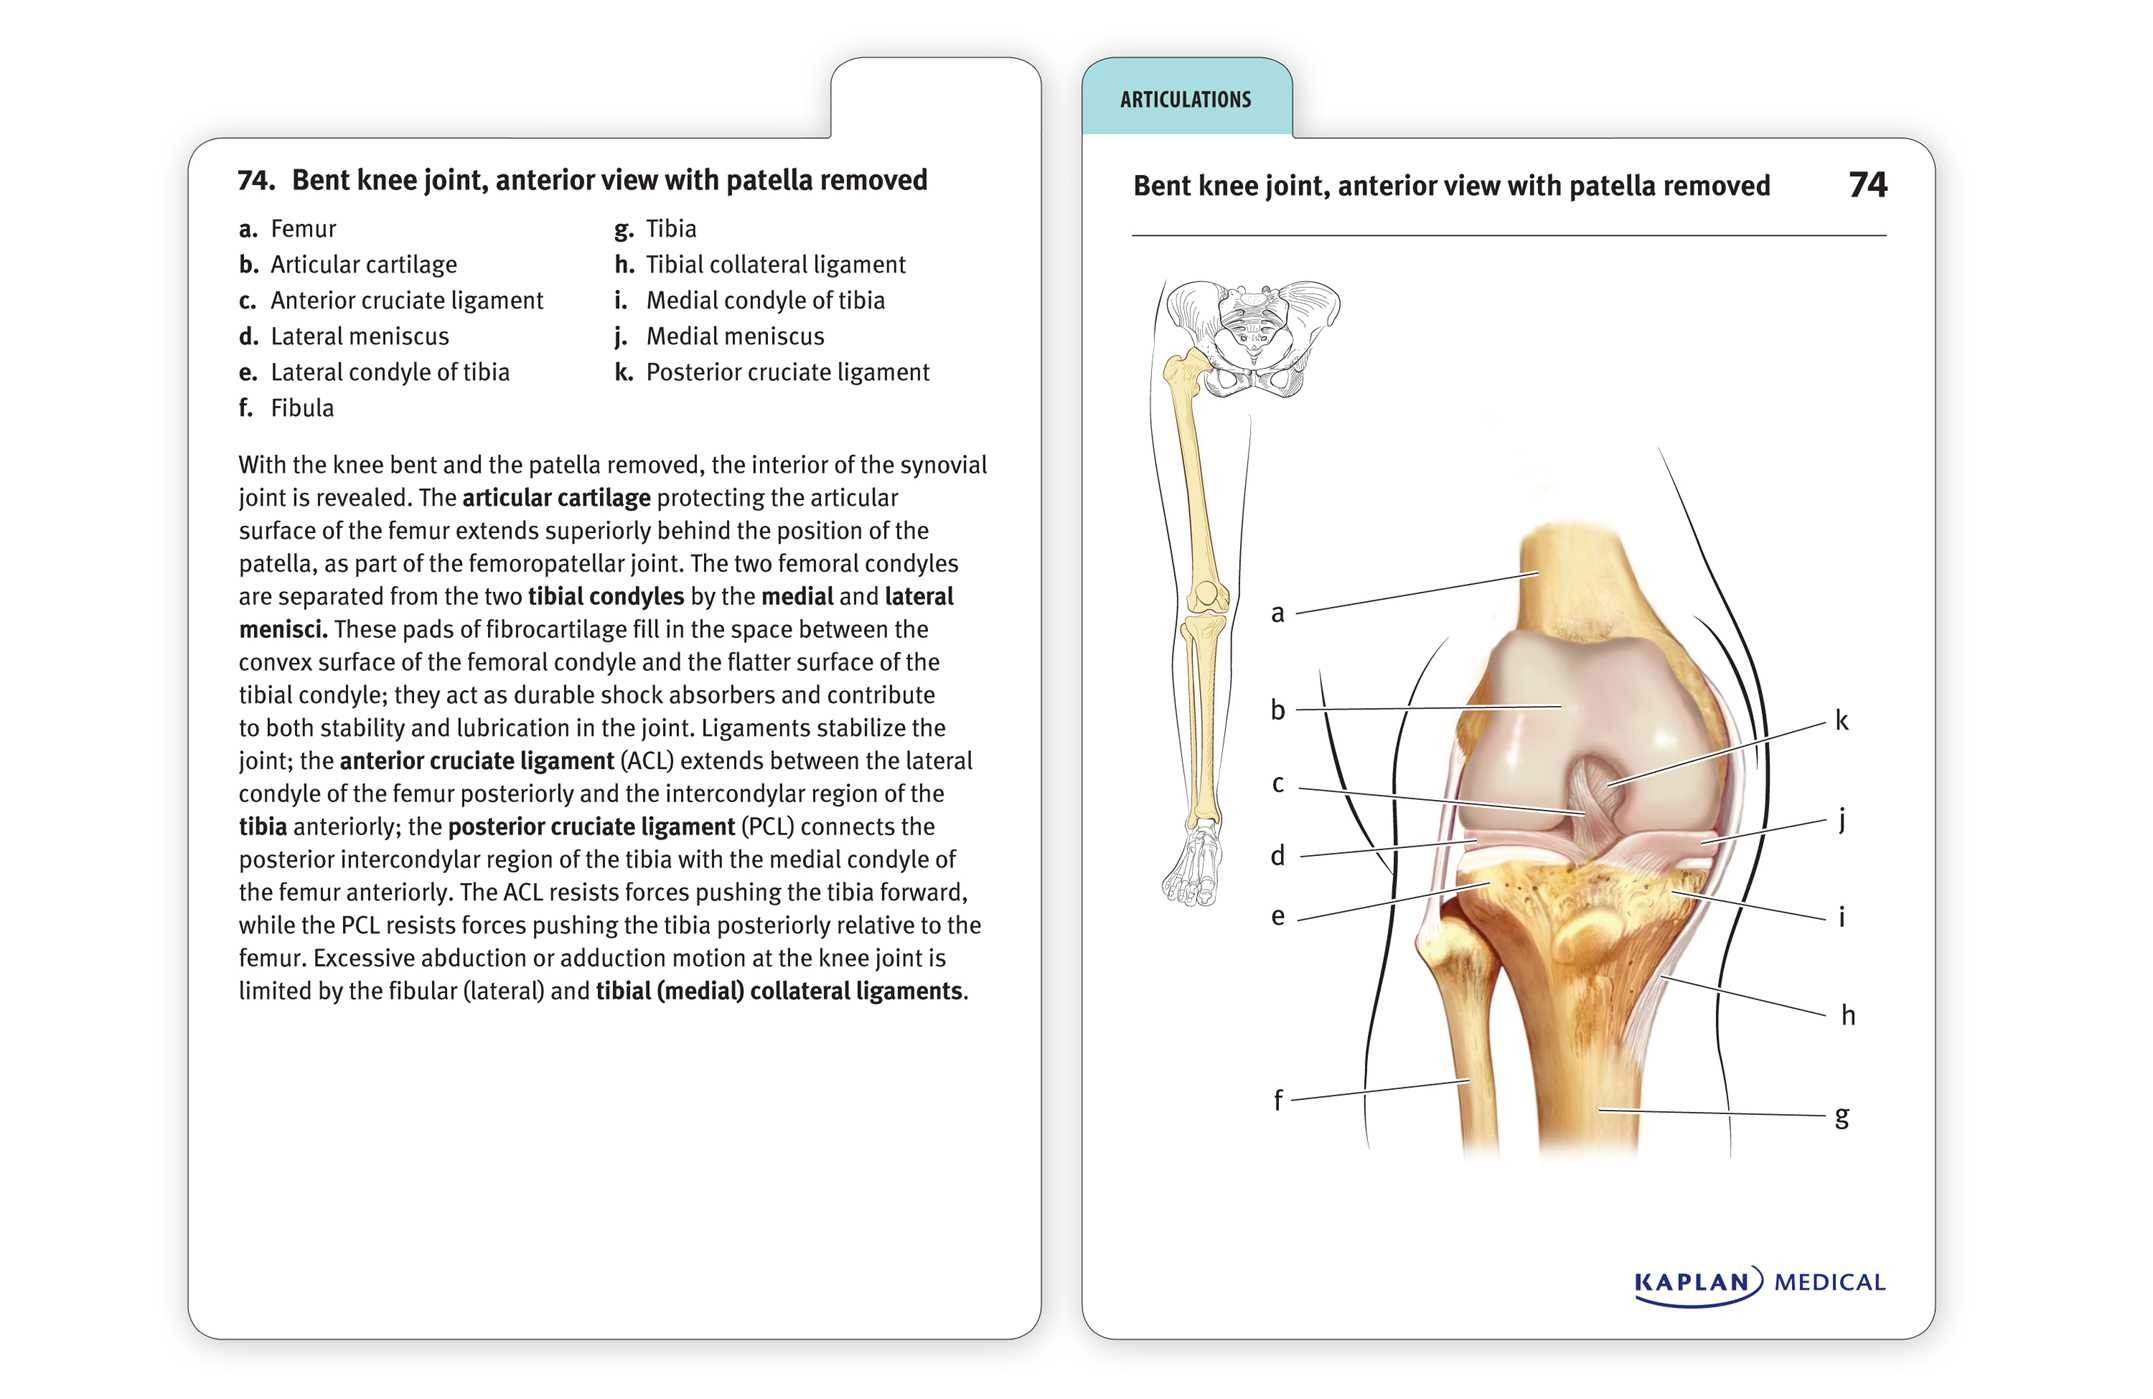 Anatomy-flashcards-9781607149842.in04